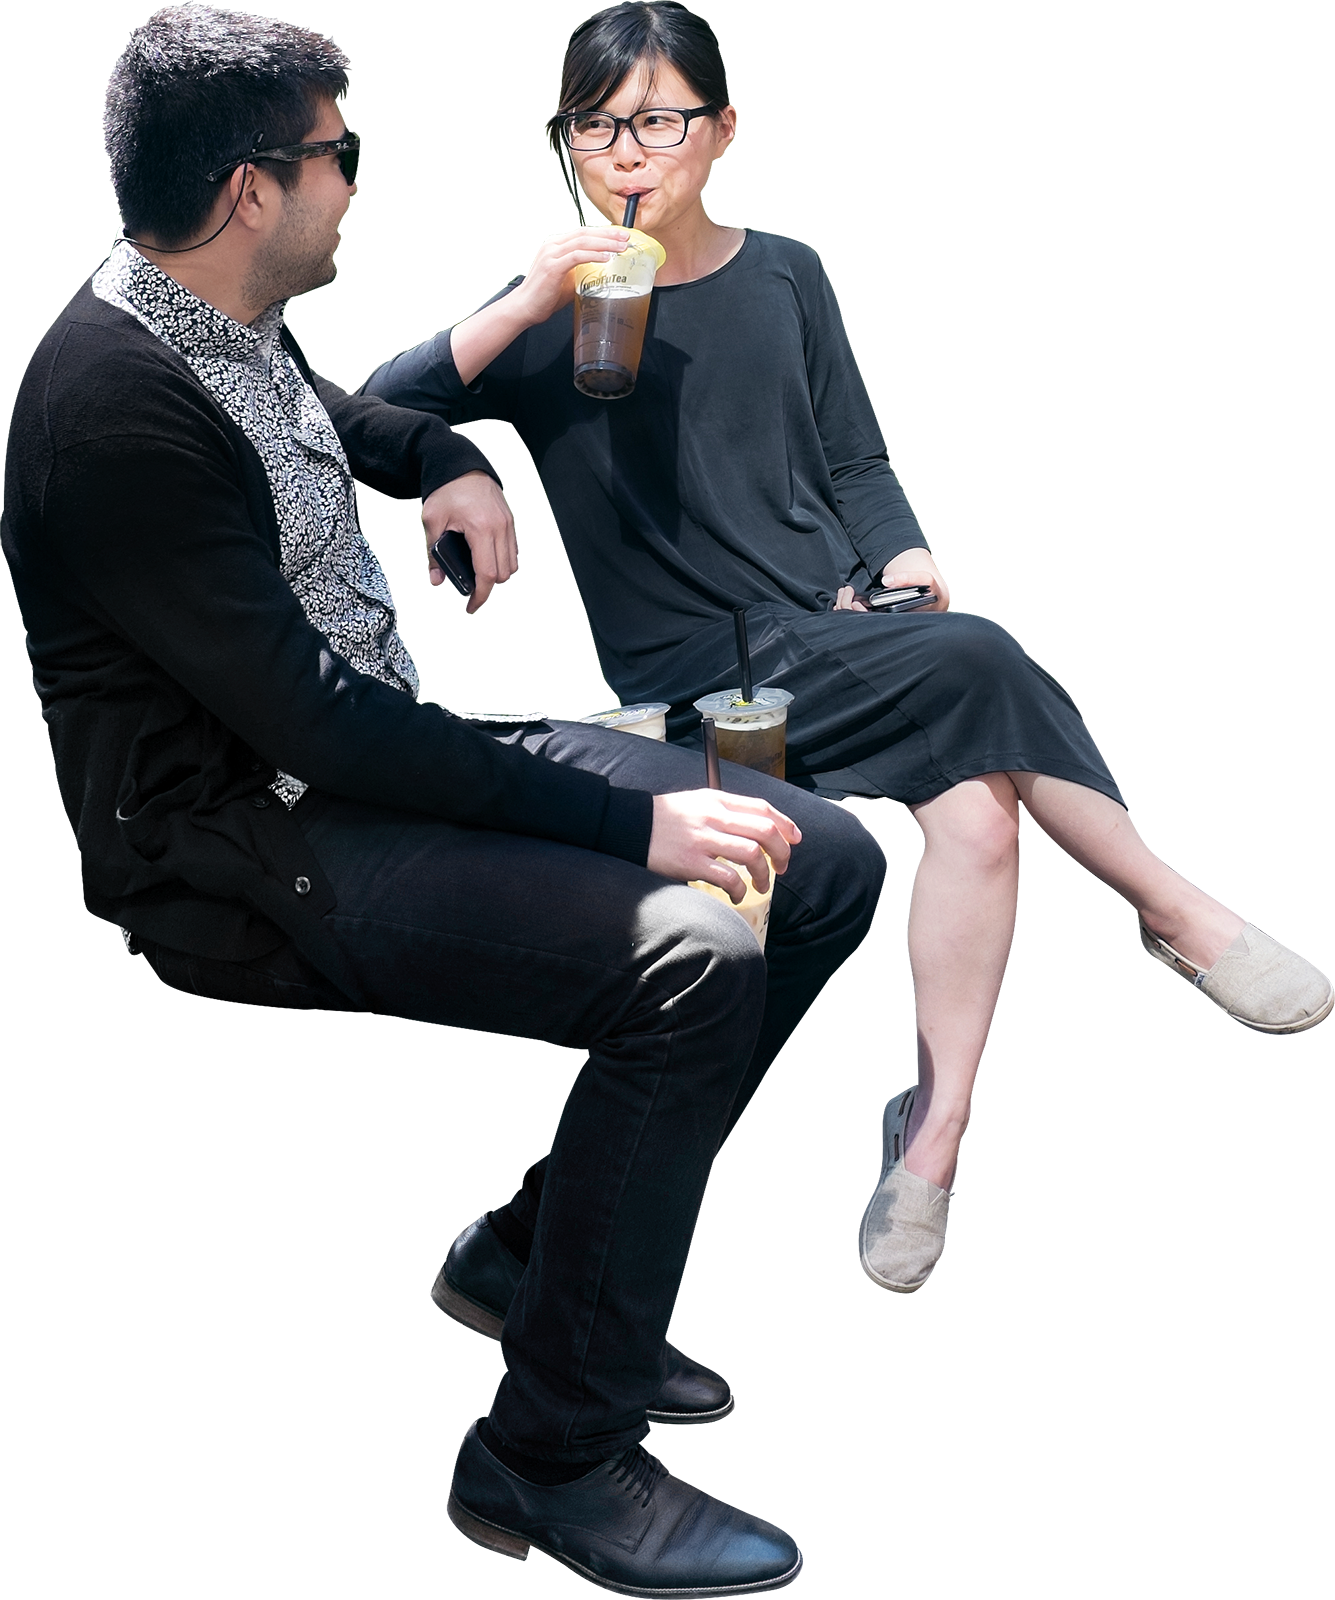 people sitting at a table png